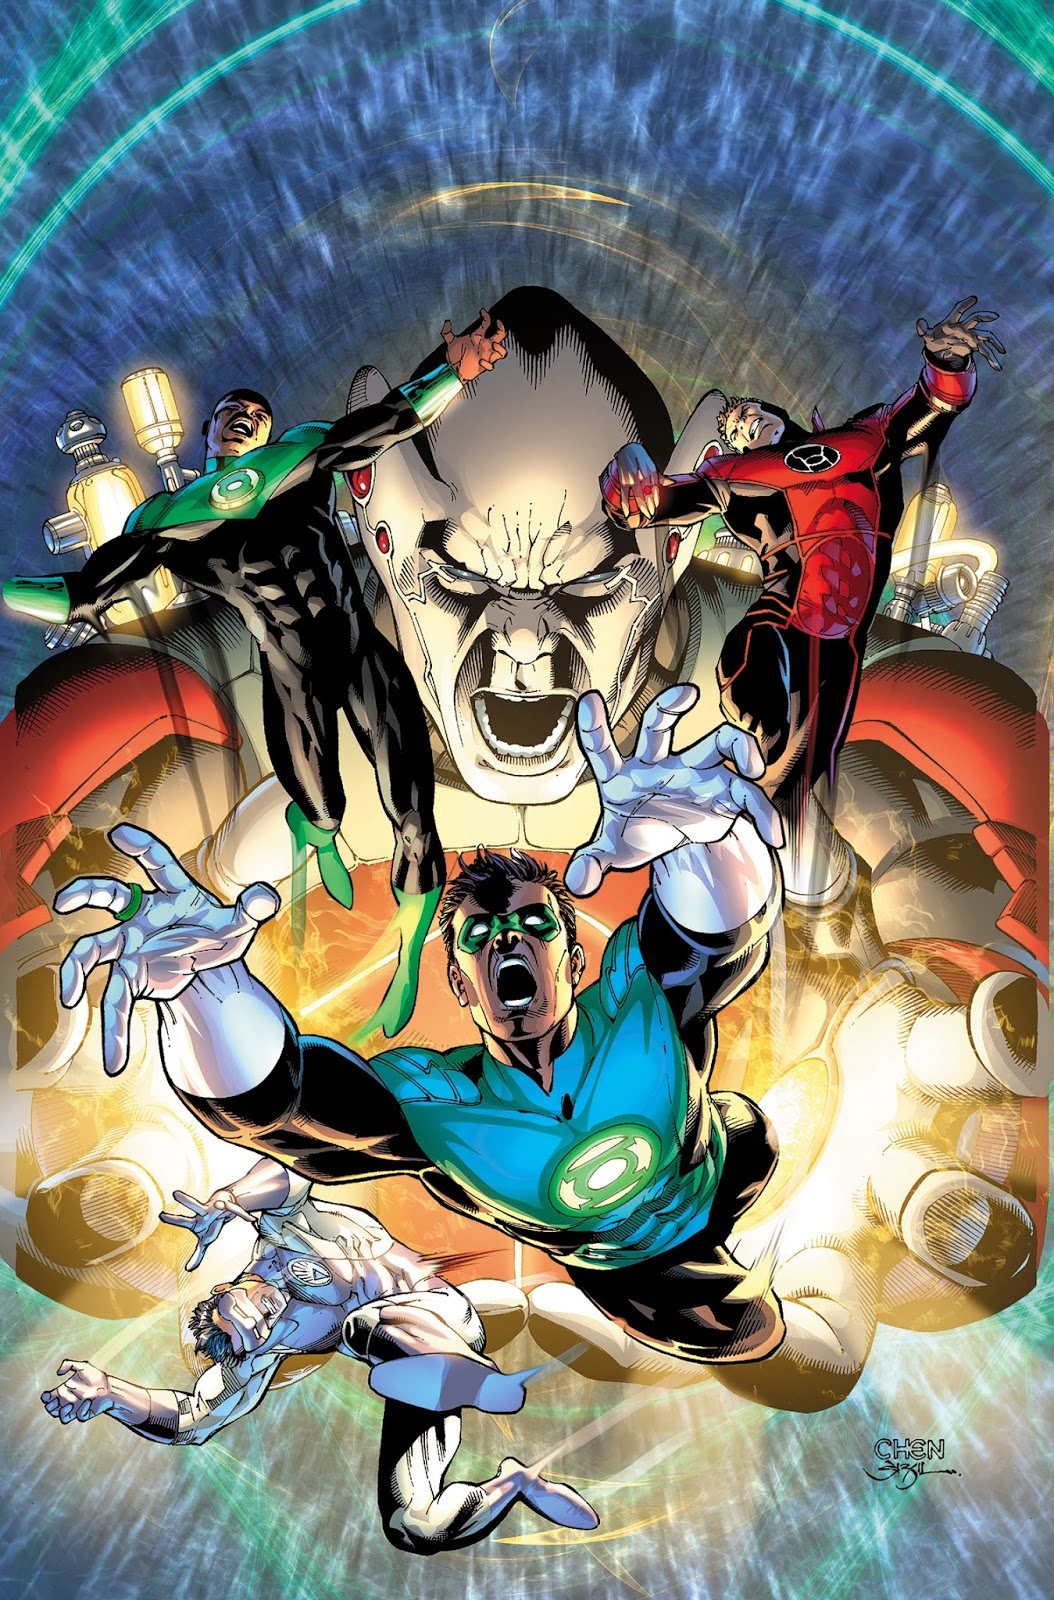 Cover for the finale of the Lights Out Green Lantern line cross over event